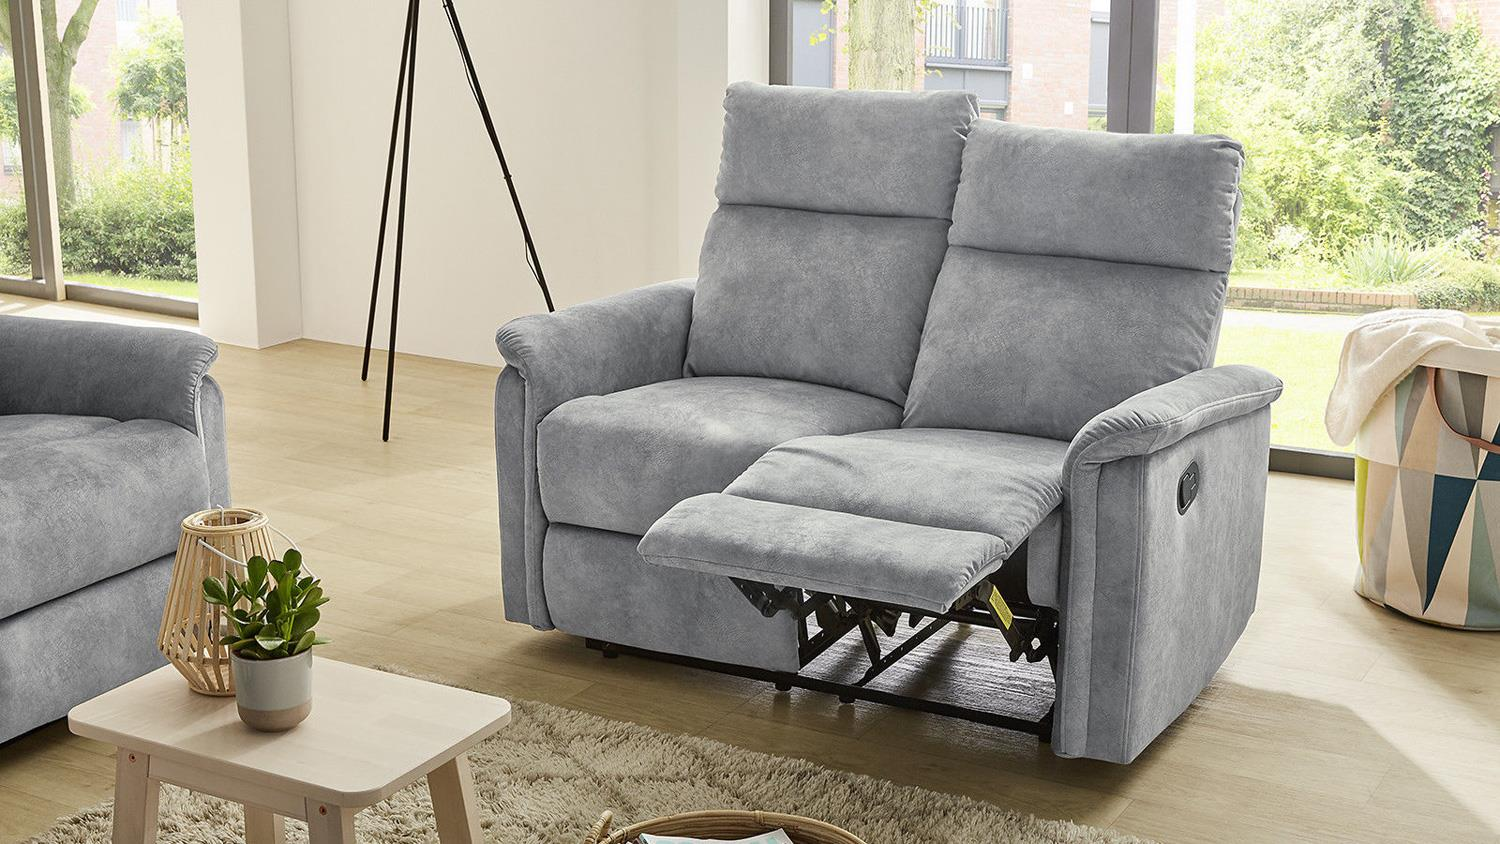 Sofa Amrum Sessel Relaxsessel 2 Sitzer mit Funktion